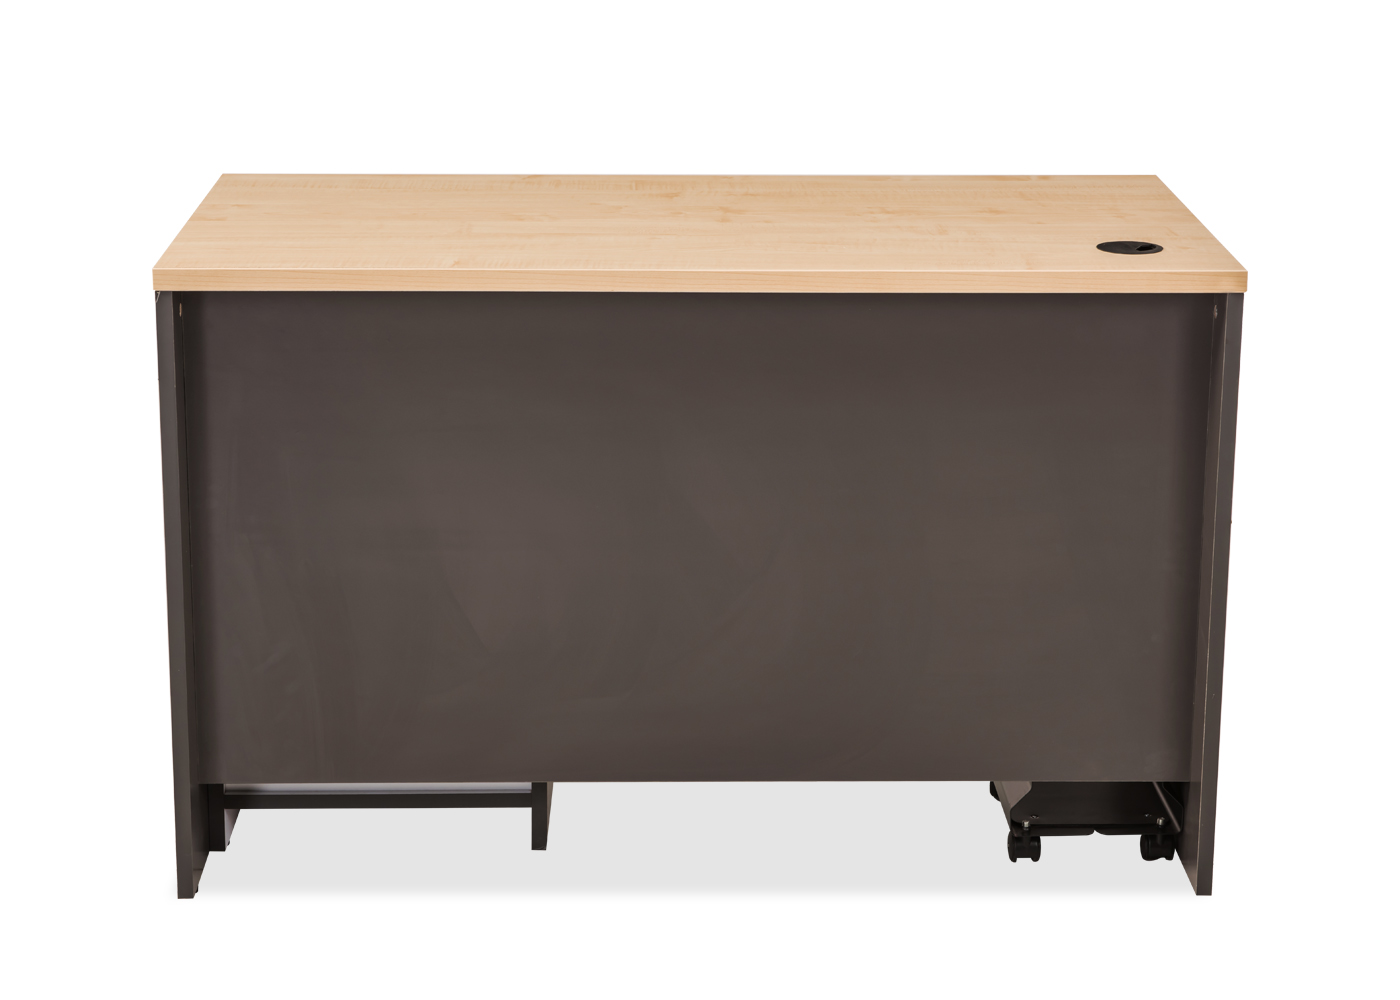 Durian DWS/34722 Engineered Wood Office Table